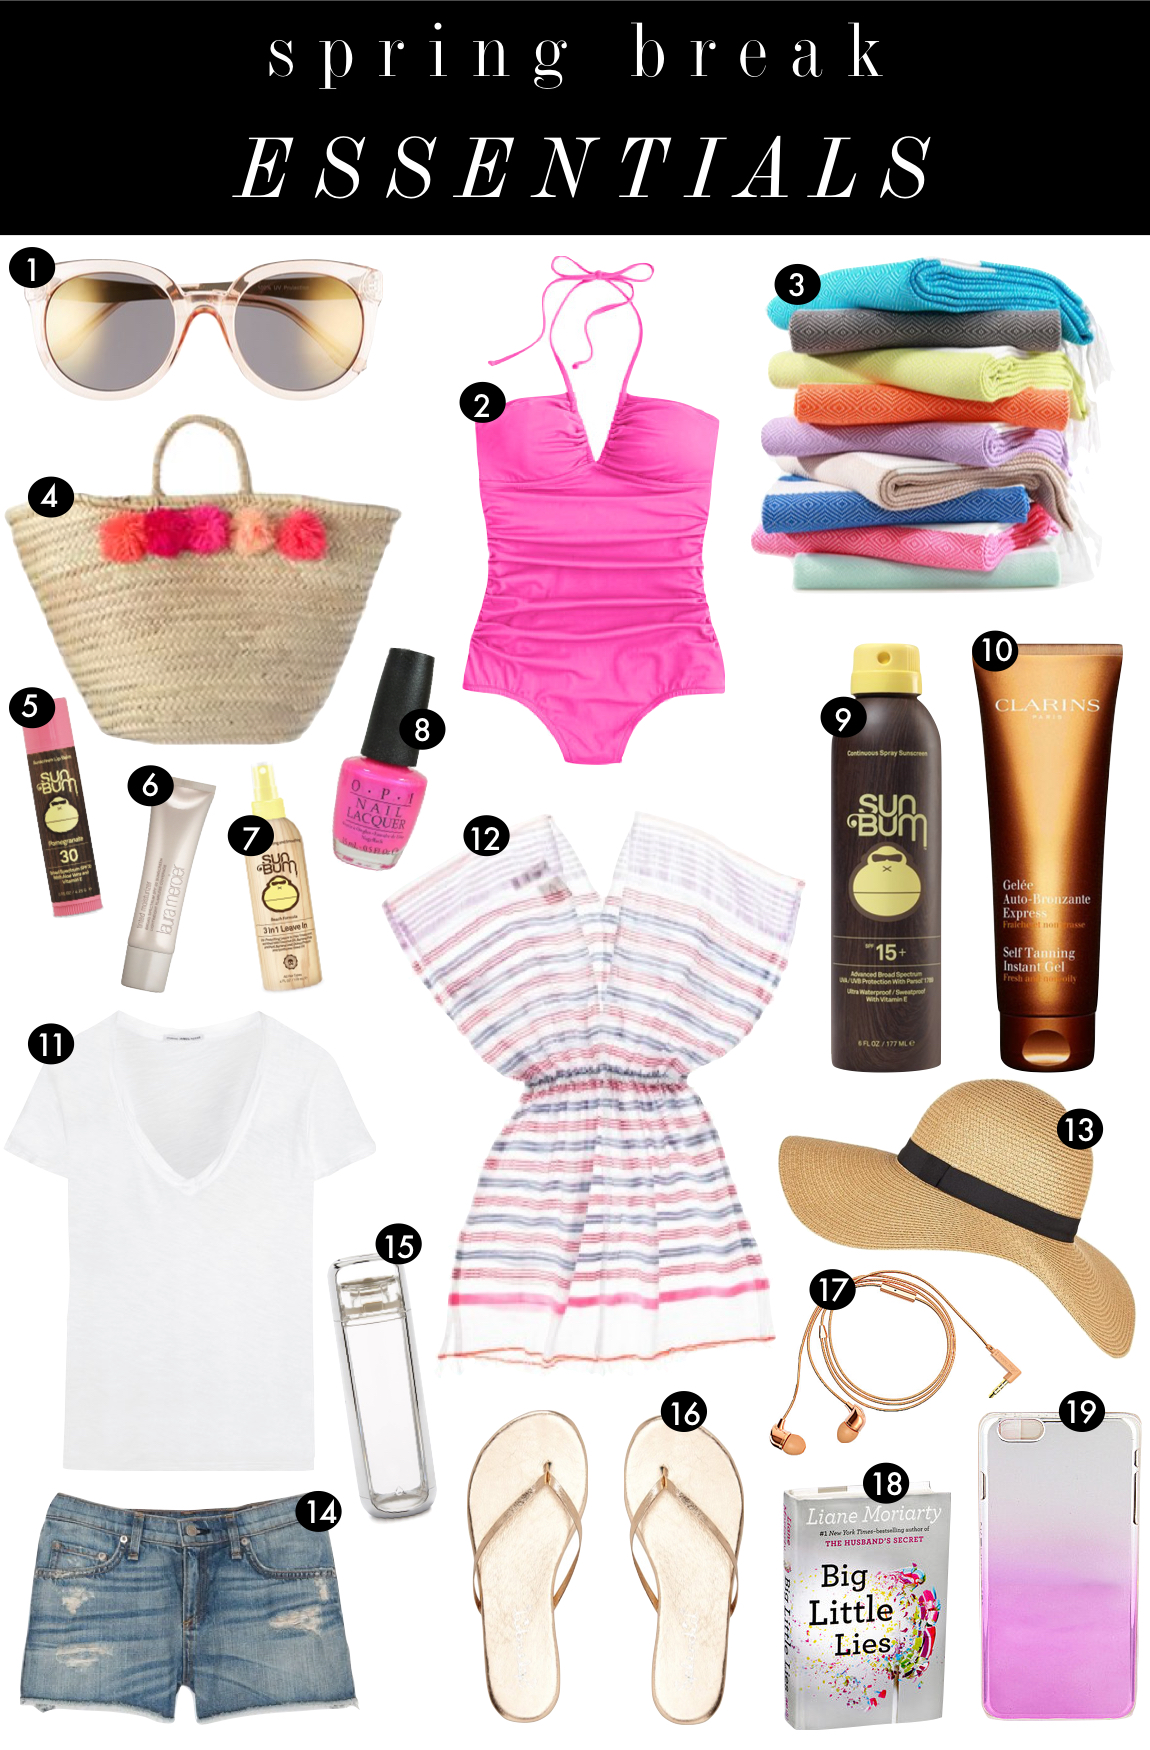 Spring Break Essentials  |  Kiki's List